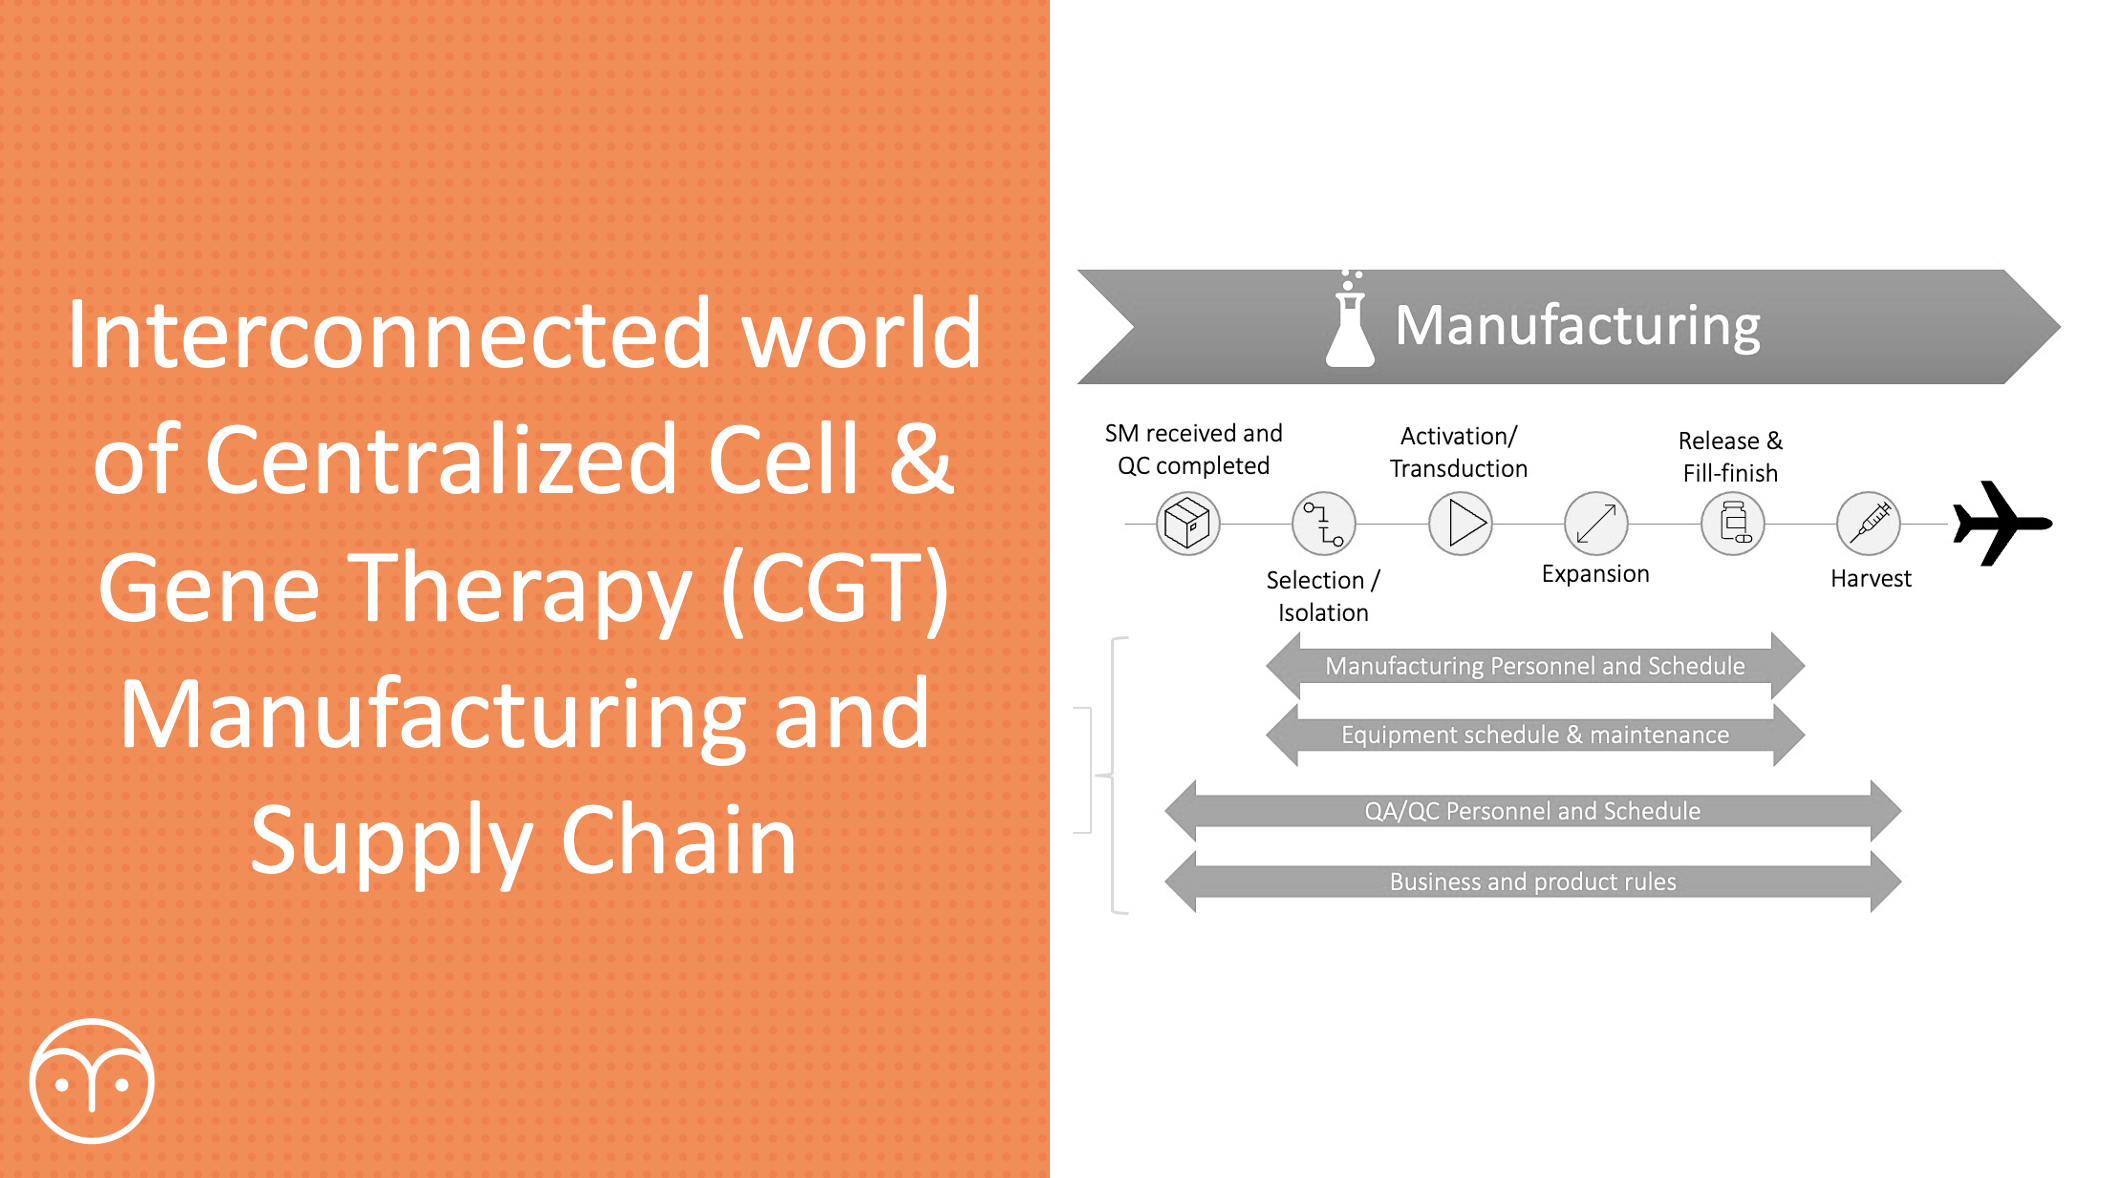 Challenges of CGT Supply Chain and Manufacturing